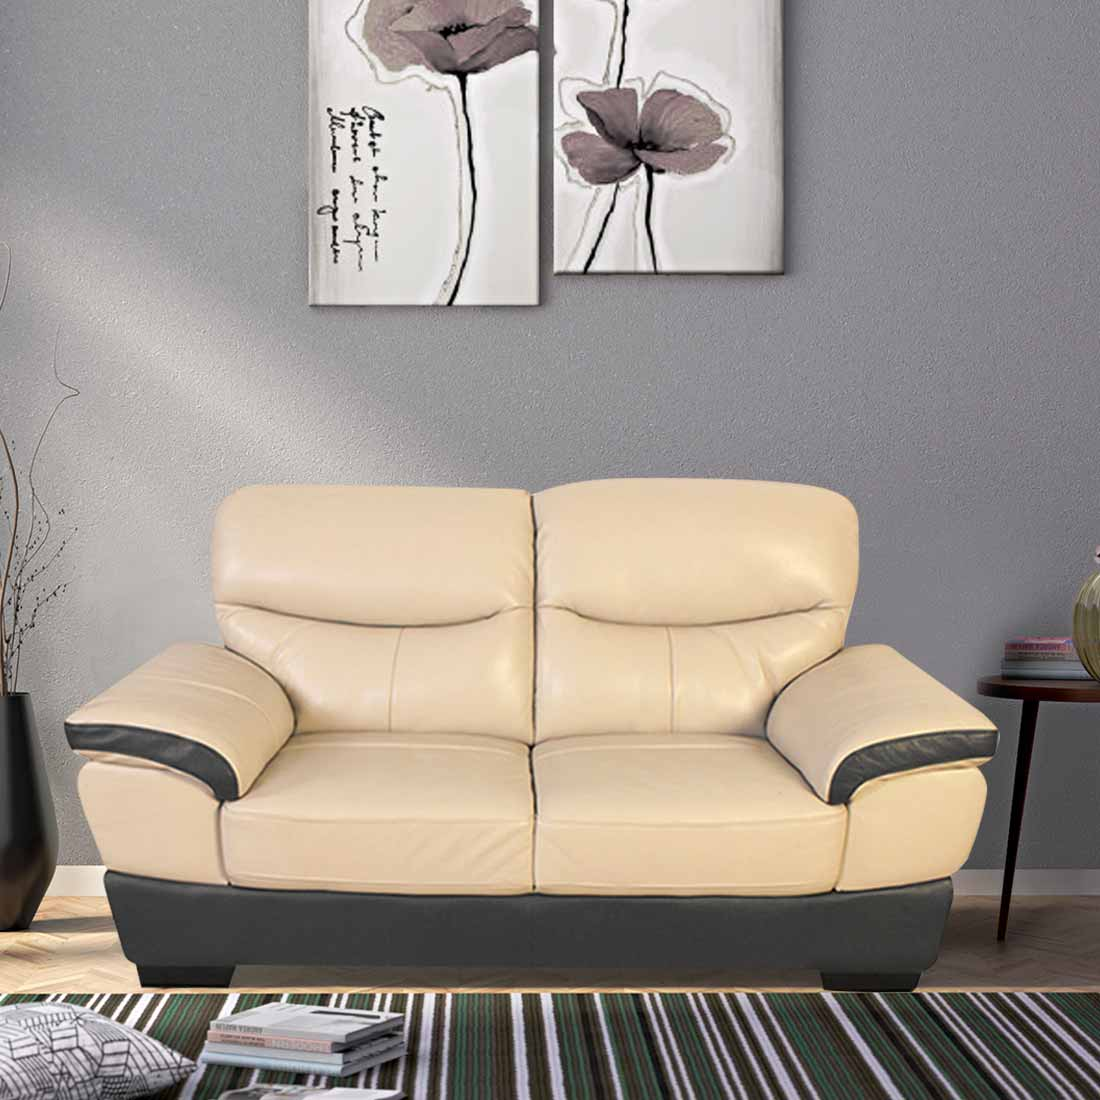 Duval Half Leather Two Seater Sofa in Beige + Brown Colour by HomeTown